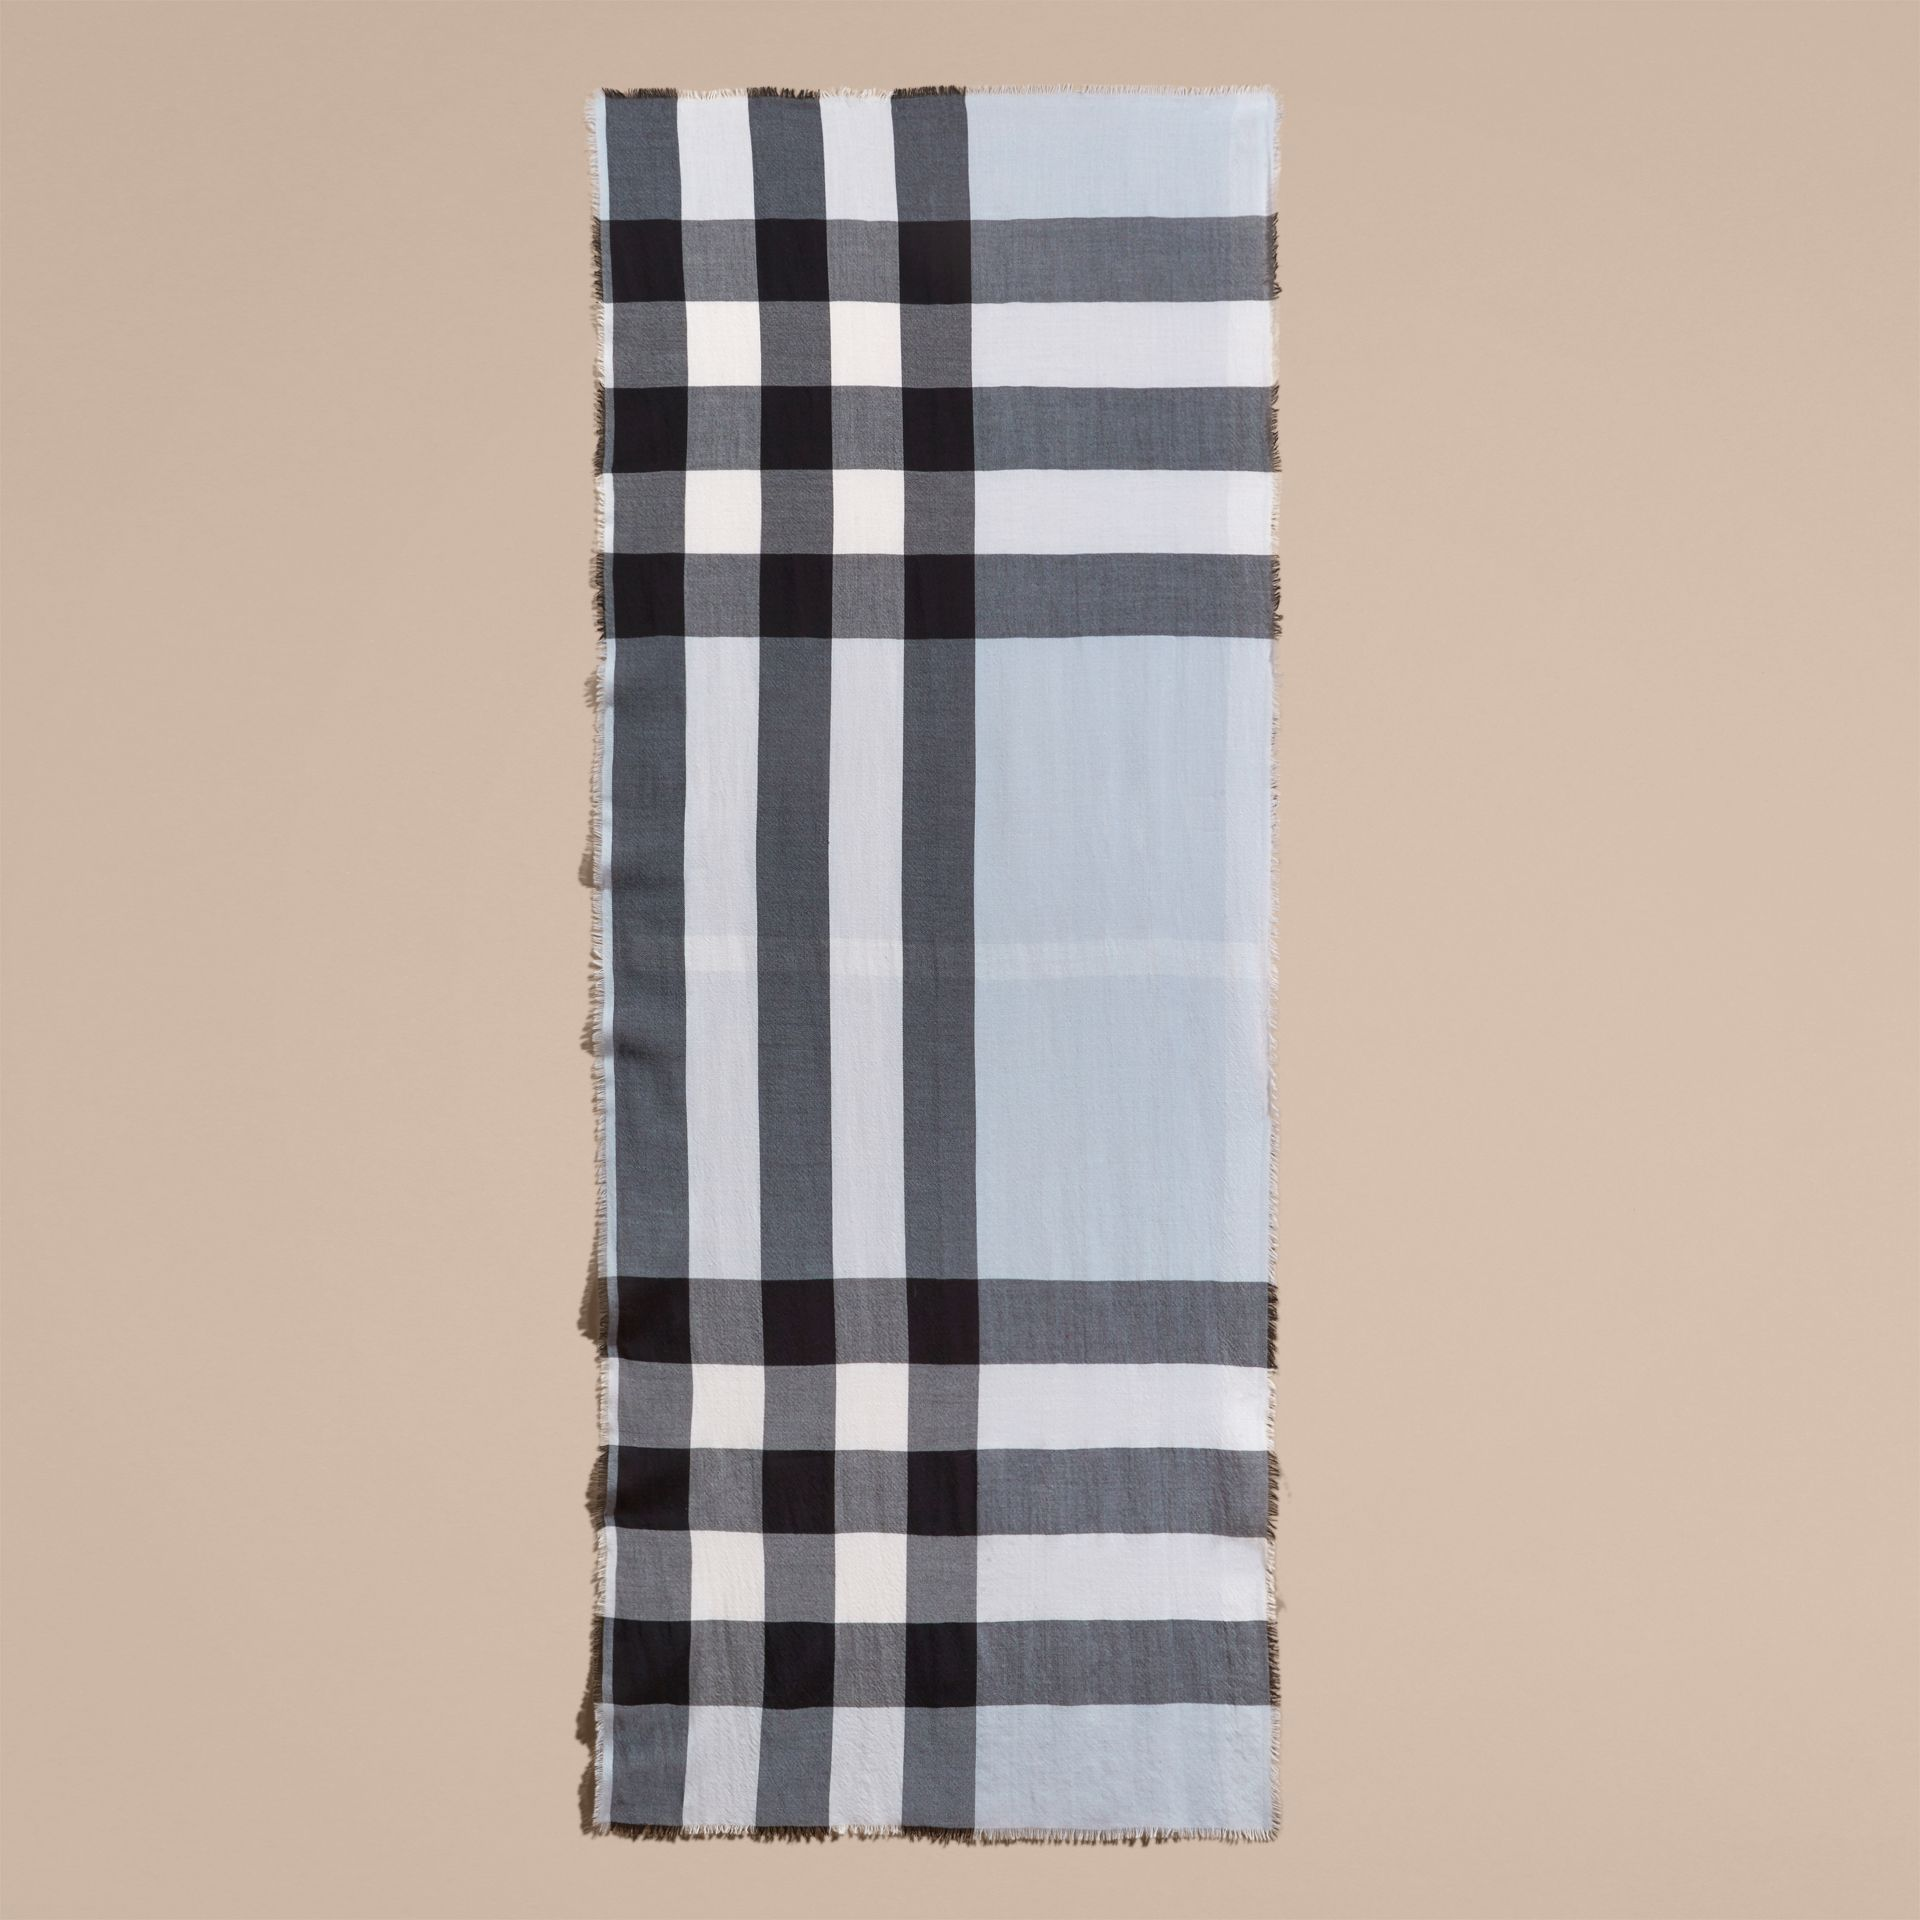 Dusty blue The Lightweight Cashmere Scarf in Check Dusty Blue - gallery image 5